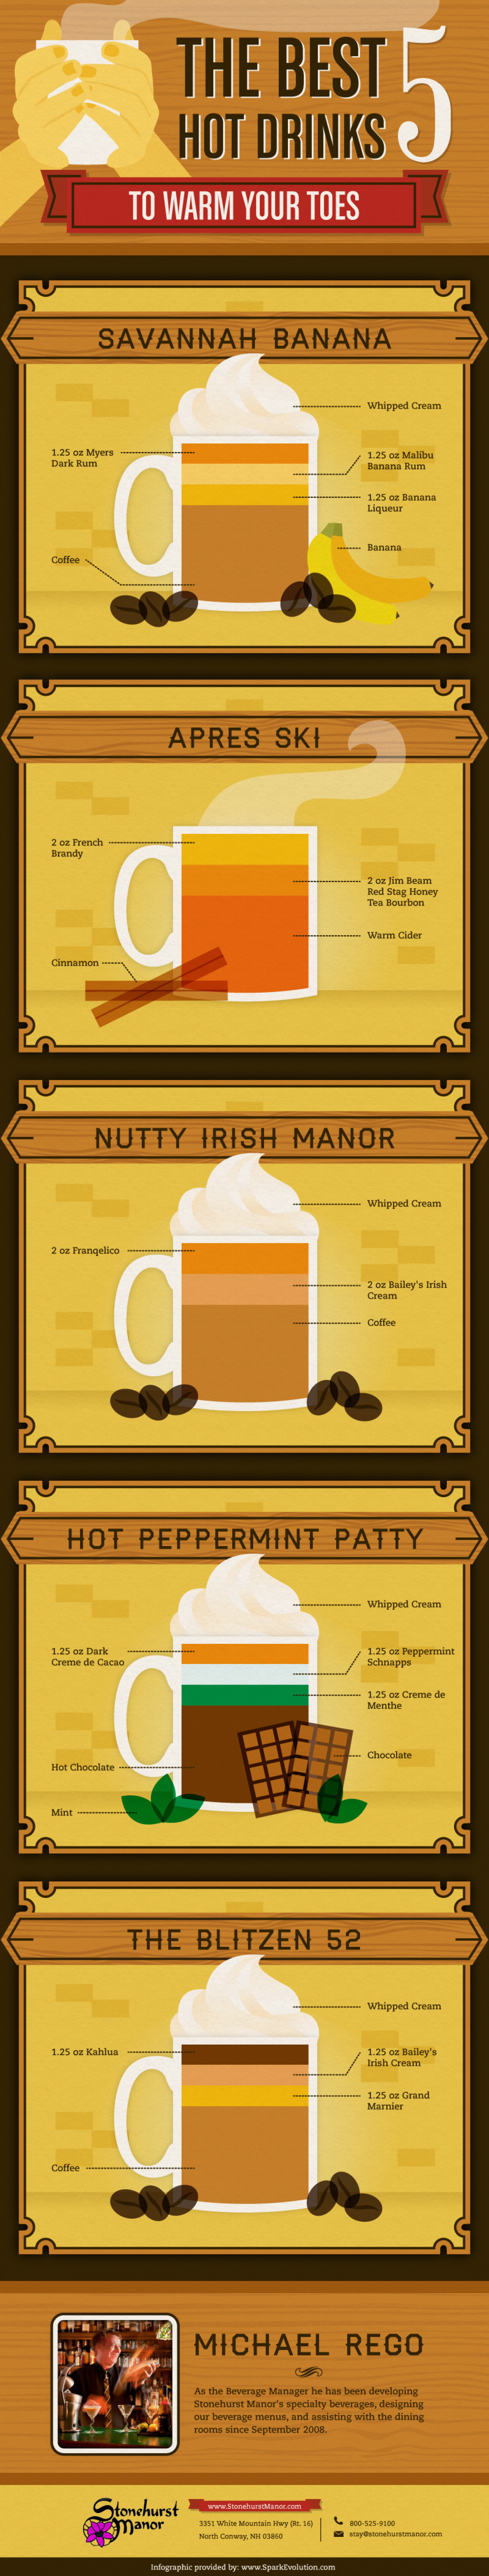 The Best 5 Hot Drinks to Warm Your Toes  Infographic